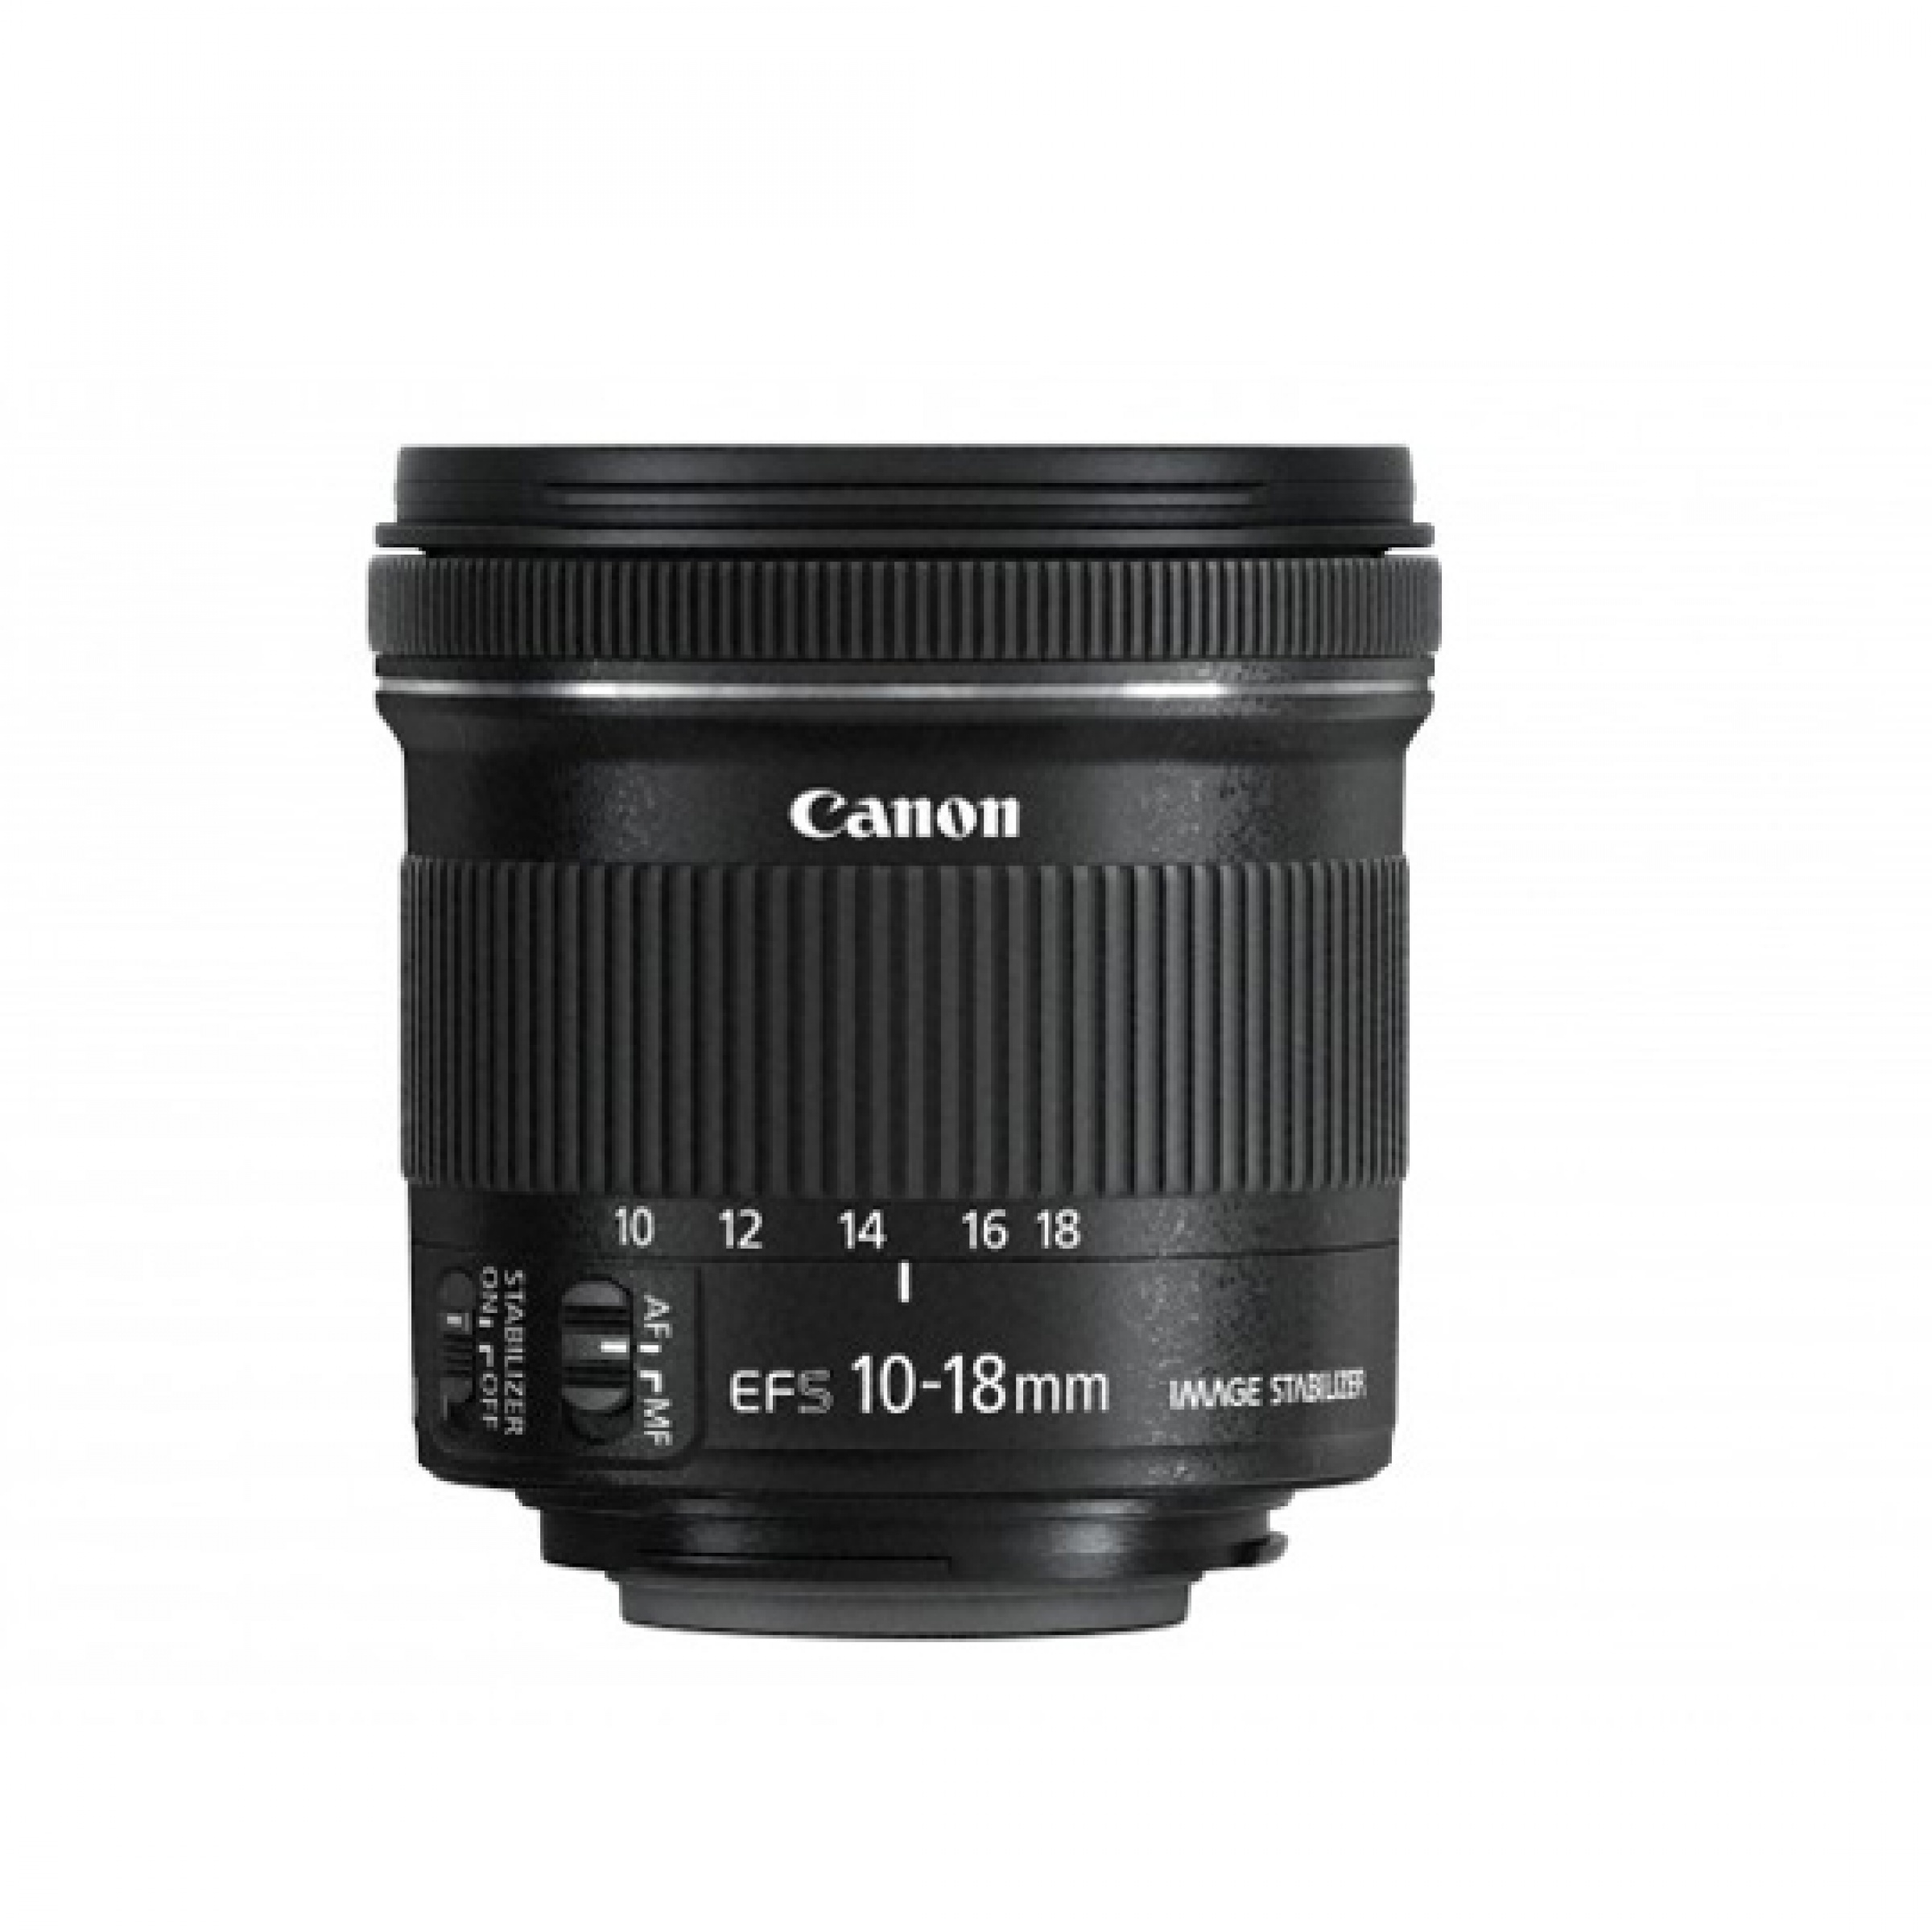 Canon-EF-S-10-18mm-f-4-5-5-6-IS-STM